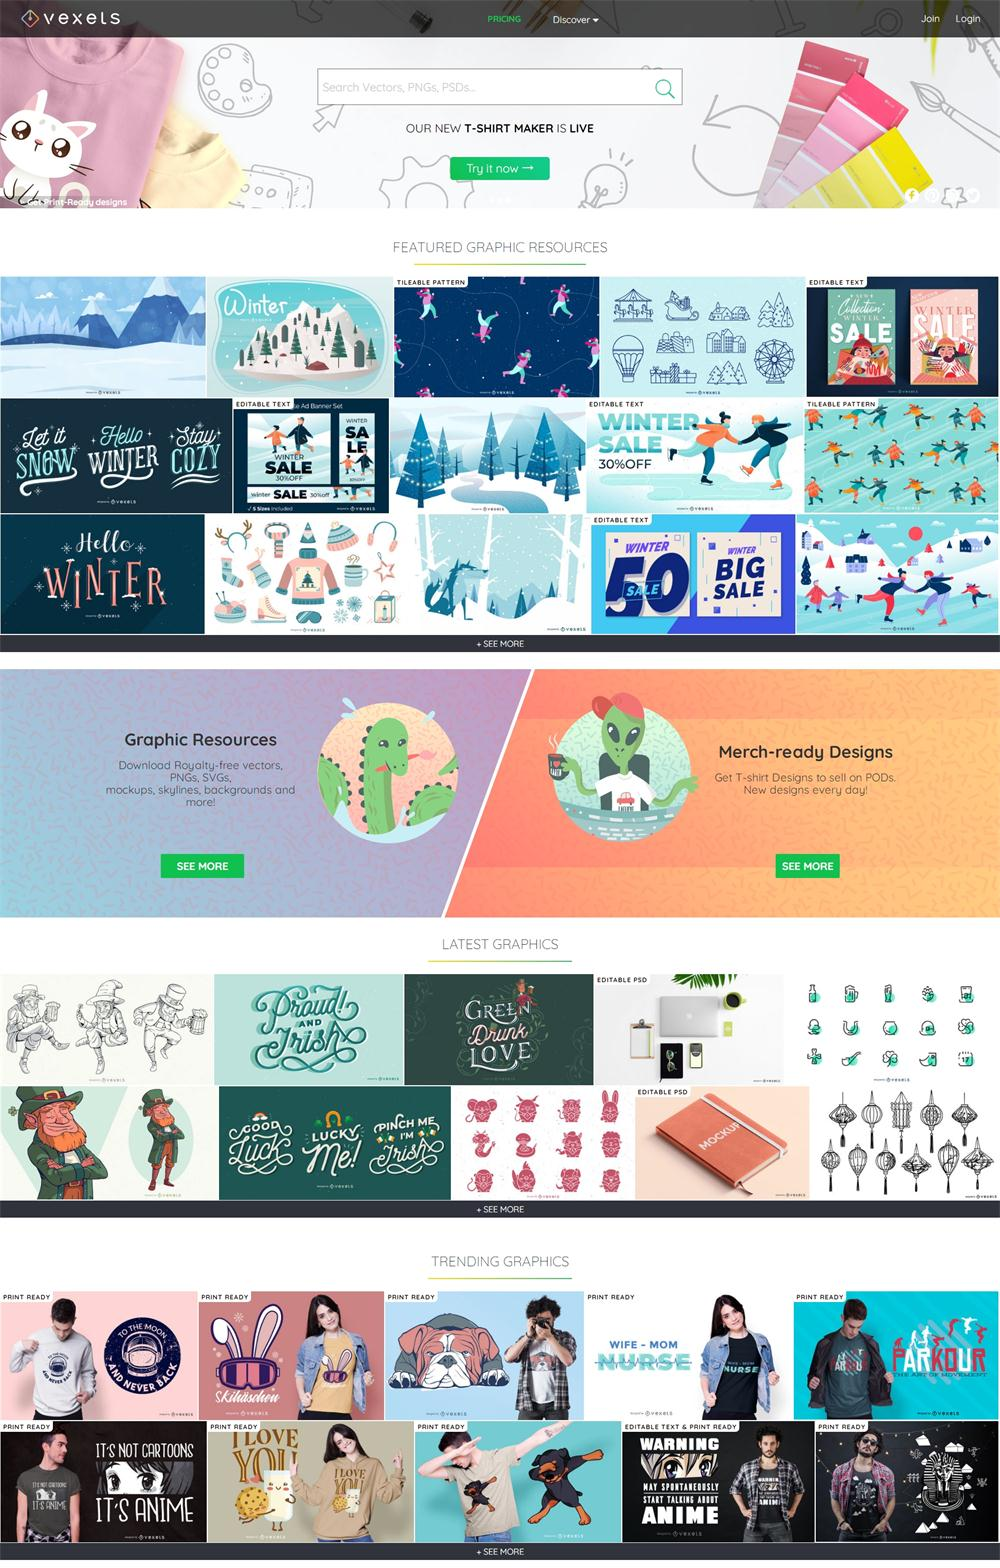 Exclusive Vector Images, Illustrations & PNGs for Commercial Use _ Vexels_看图王.jpg